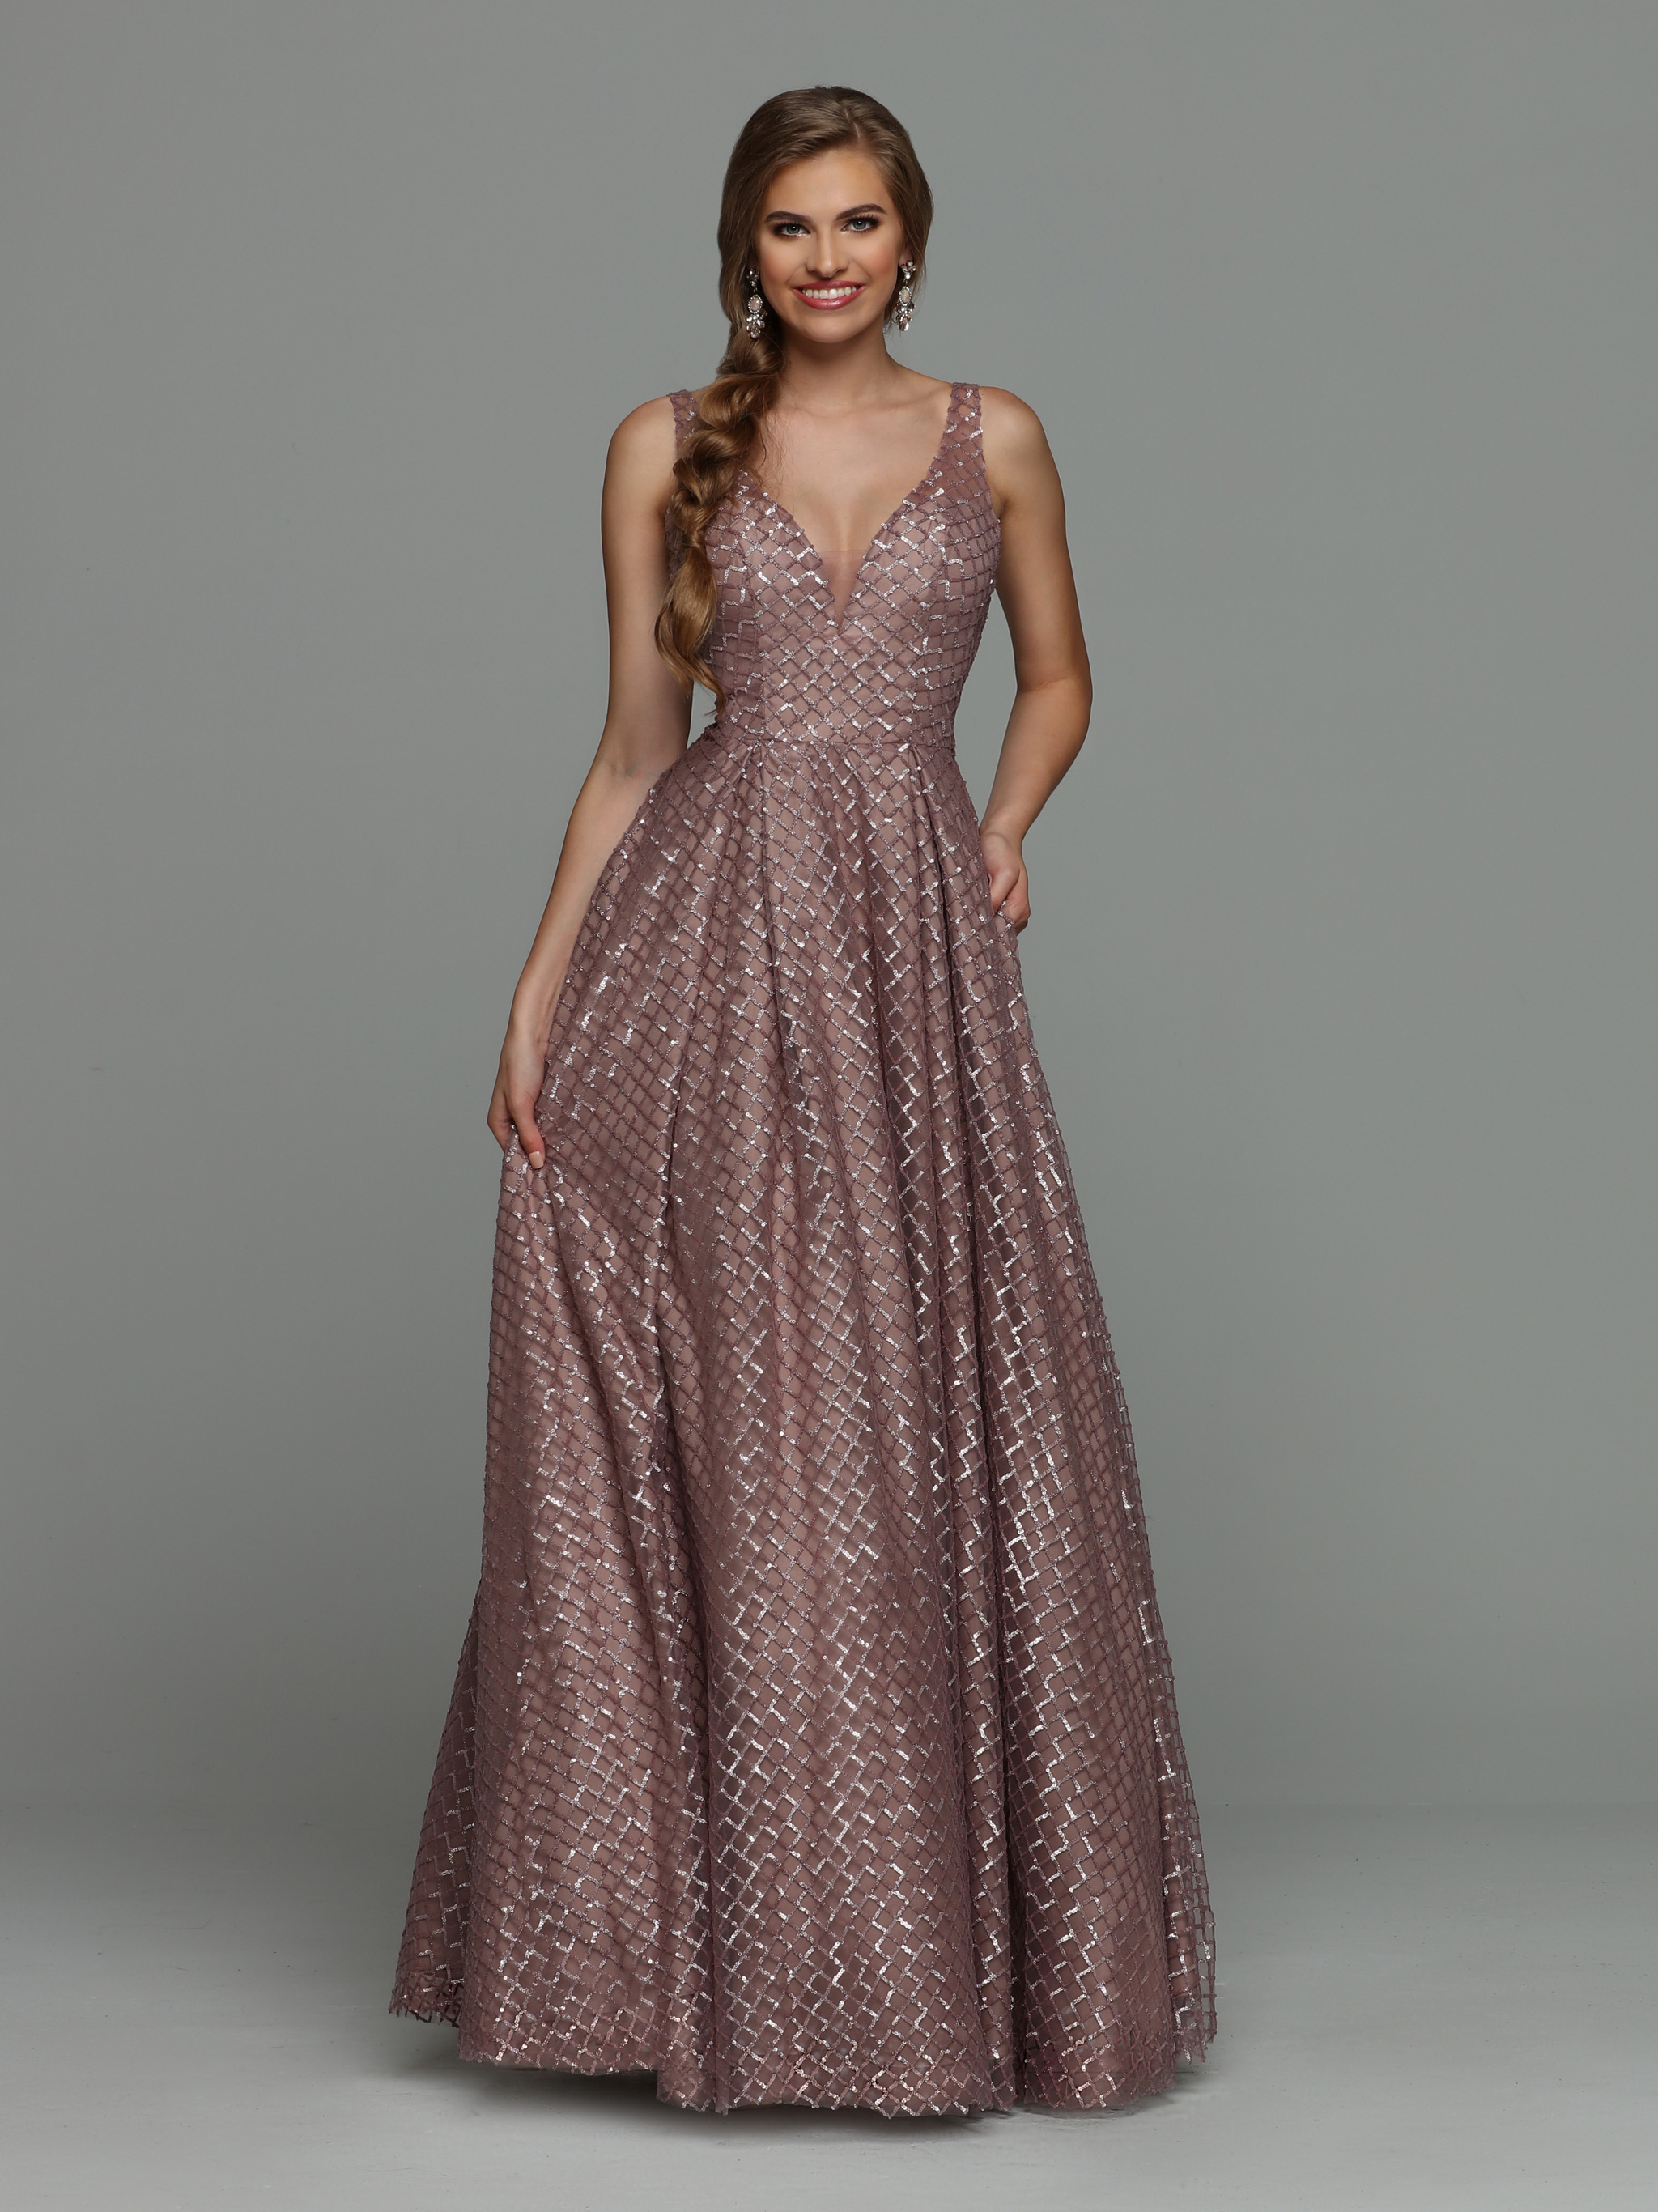 206a73c6e639 Top Prom Dress Trends 2019: Ball Gown Prom Dresses – Sparkle Prom Blog